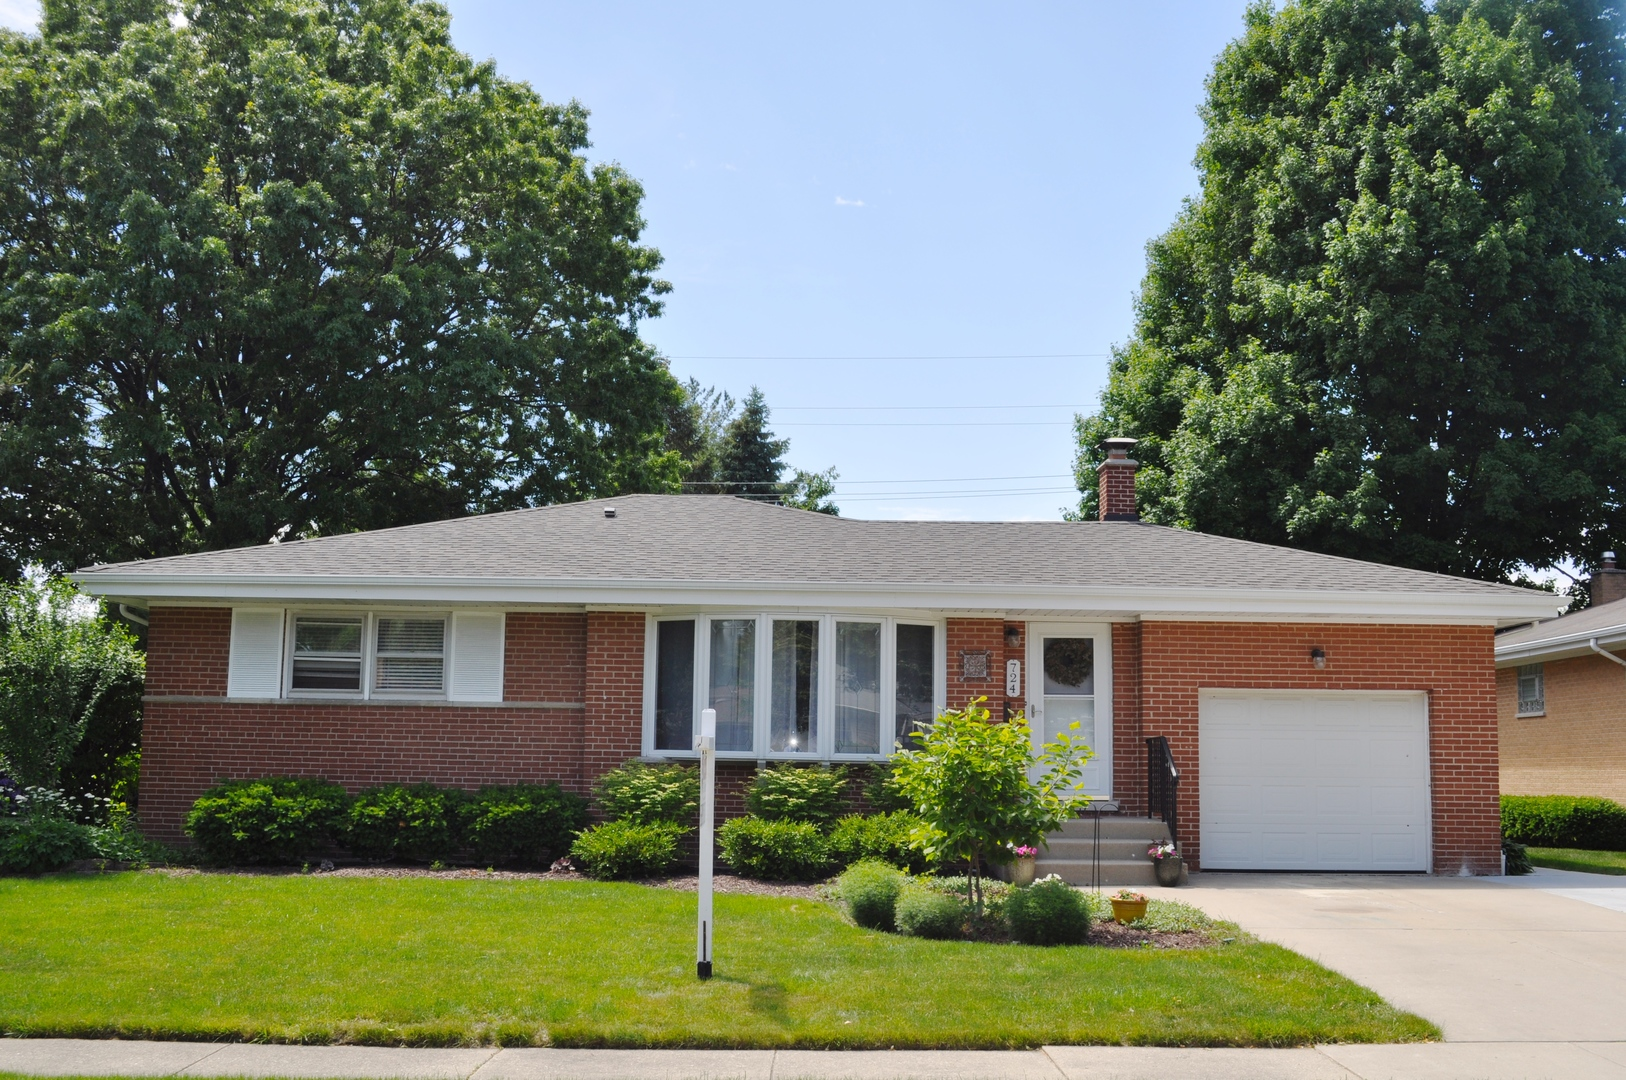 724 North Drury Lane, Arlington Heights in Cook County, IL 60004 Home for Sale